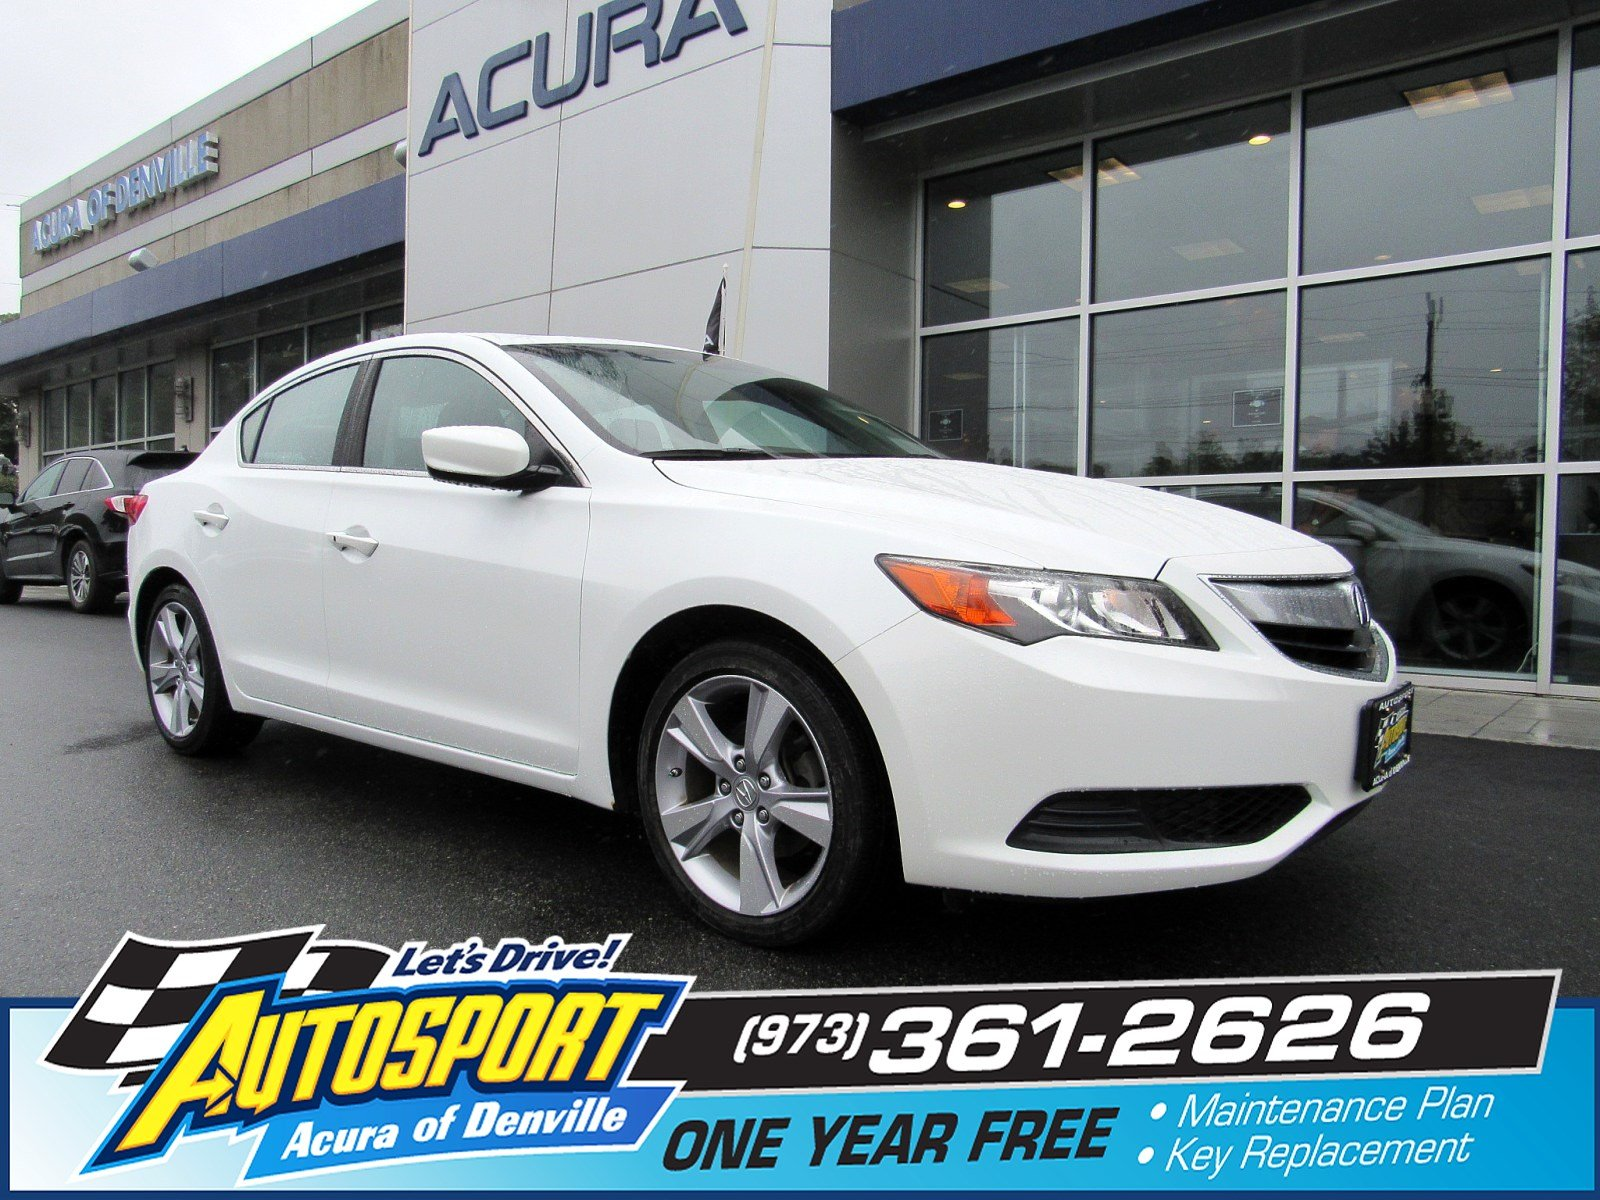 Certified PreOwned Acura ILX Speed Automatic Dr Car In - Pre own acura